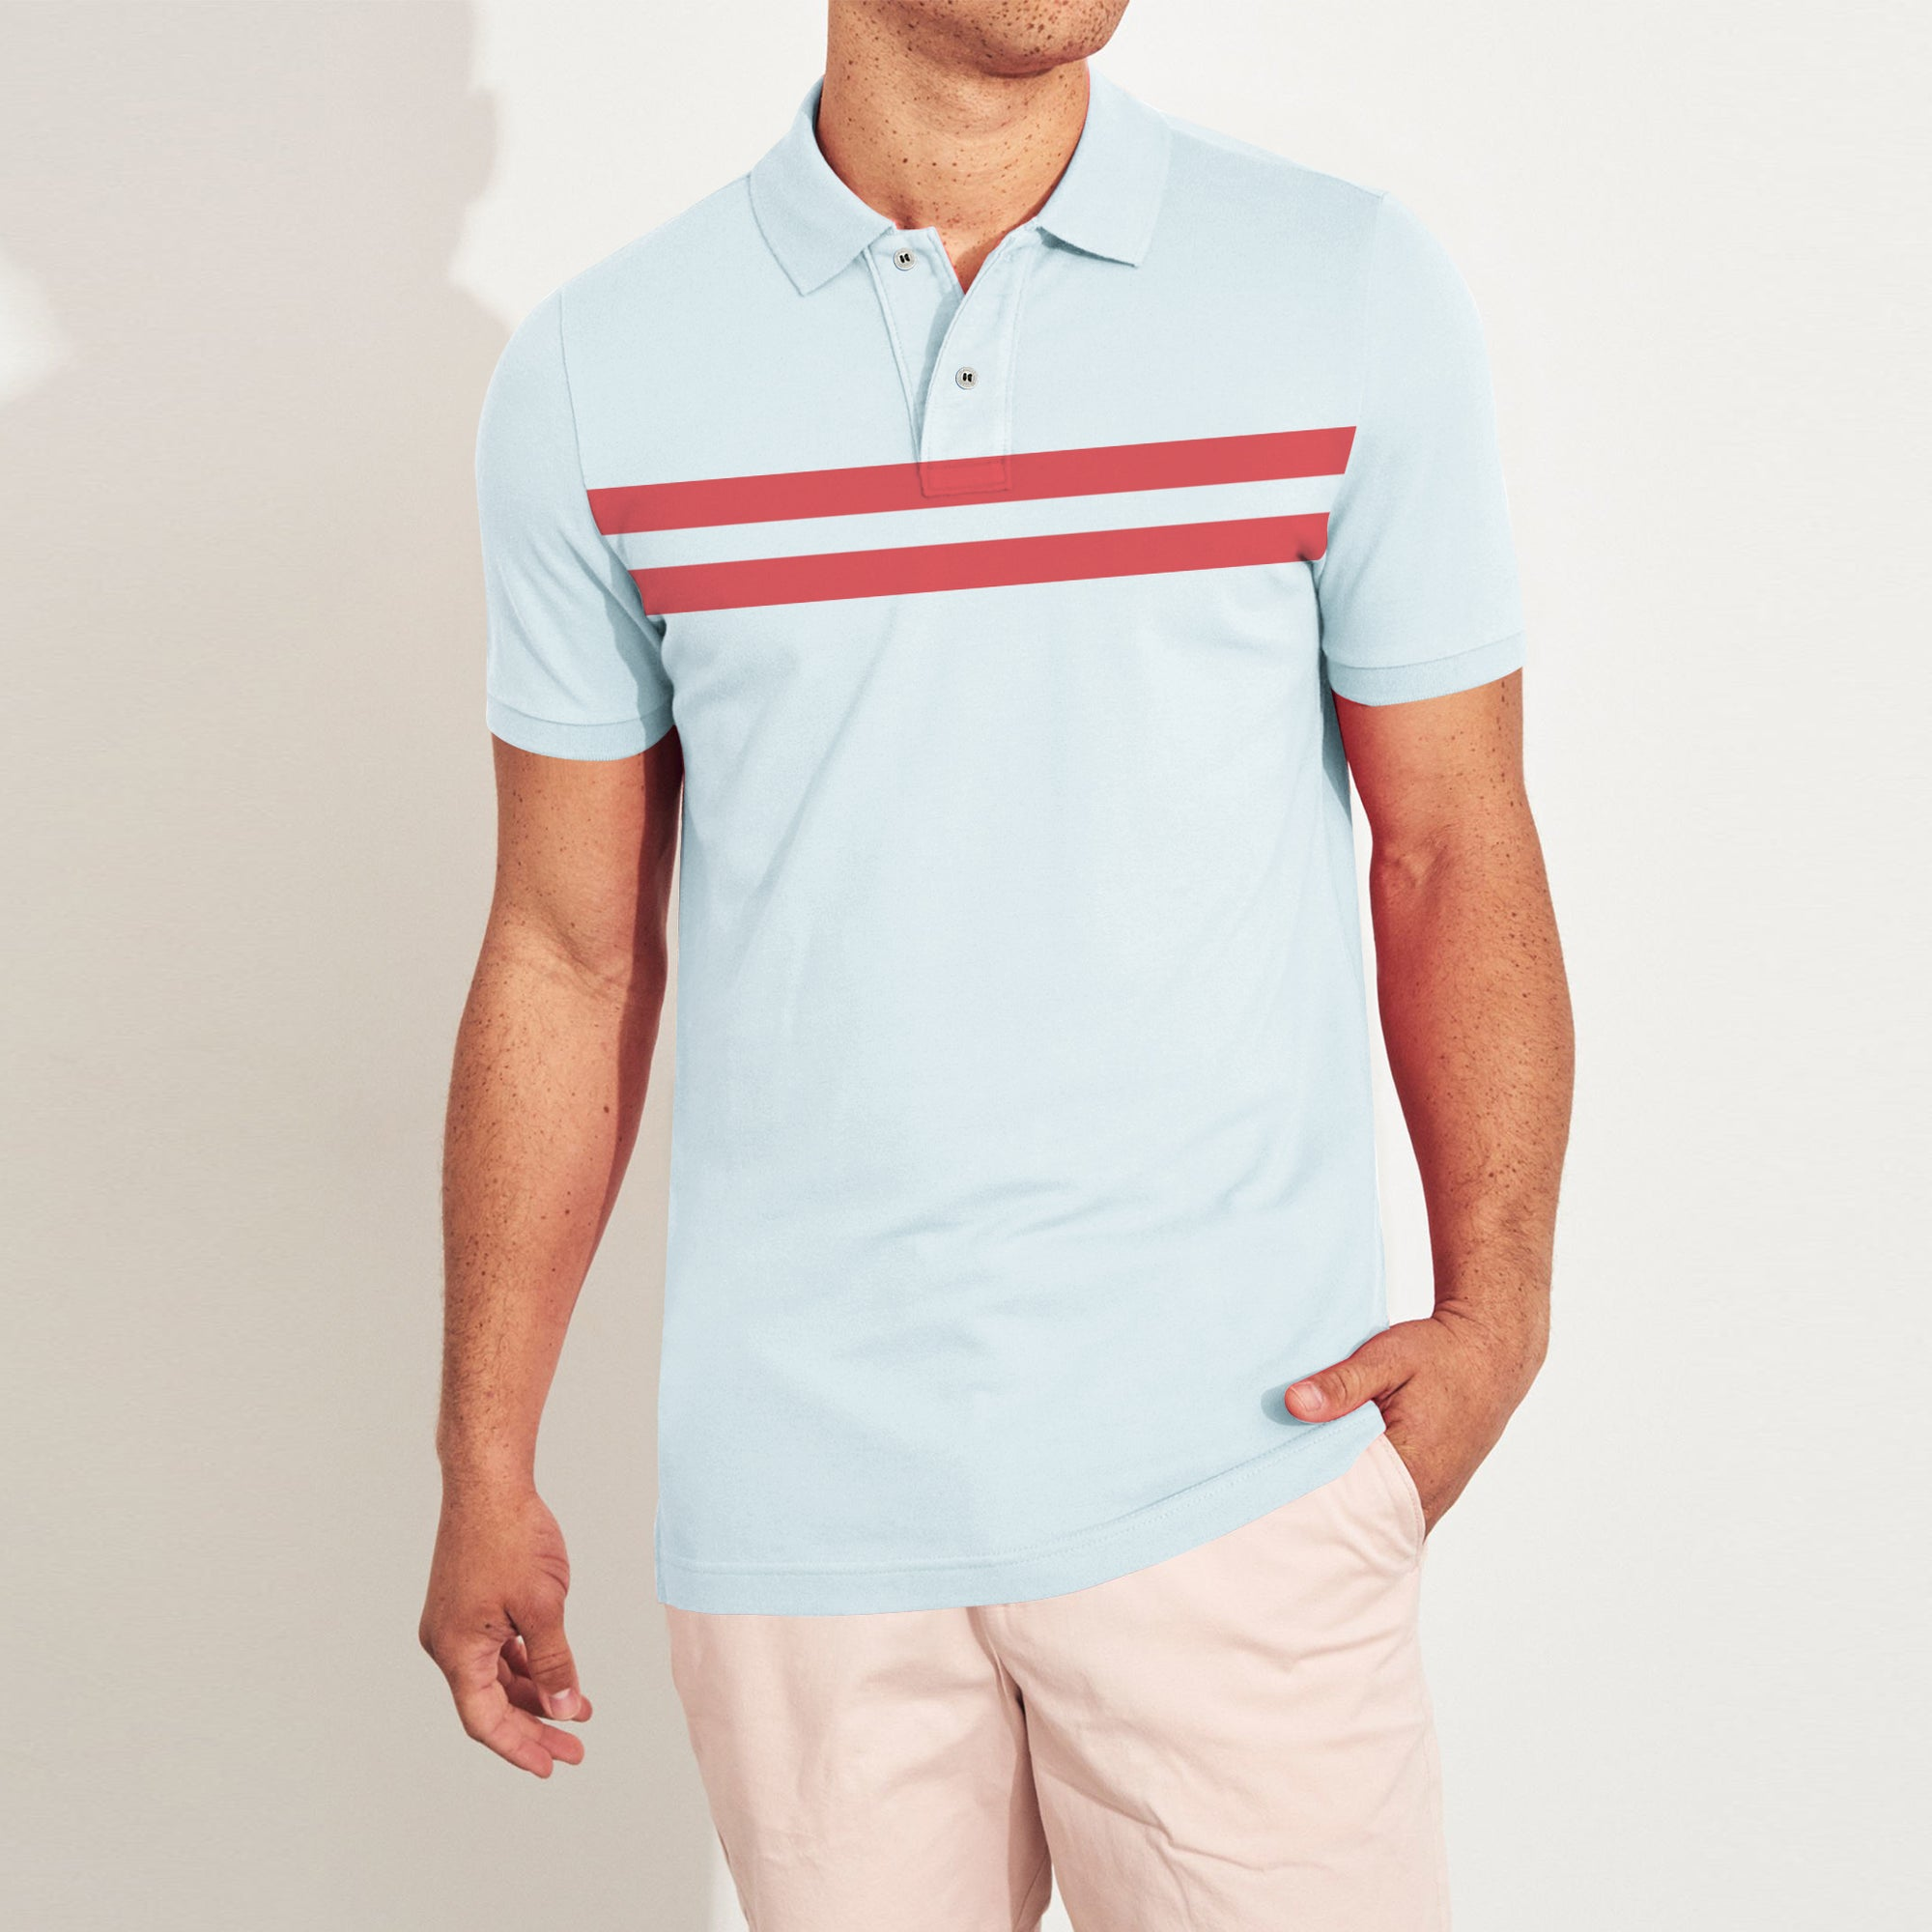 brandsego - The Modern Short Sleeve P.Q Polo Shirt For Men-BE9005